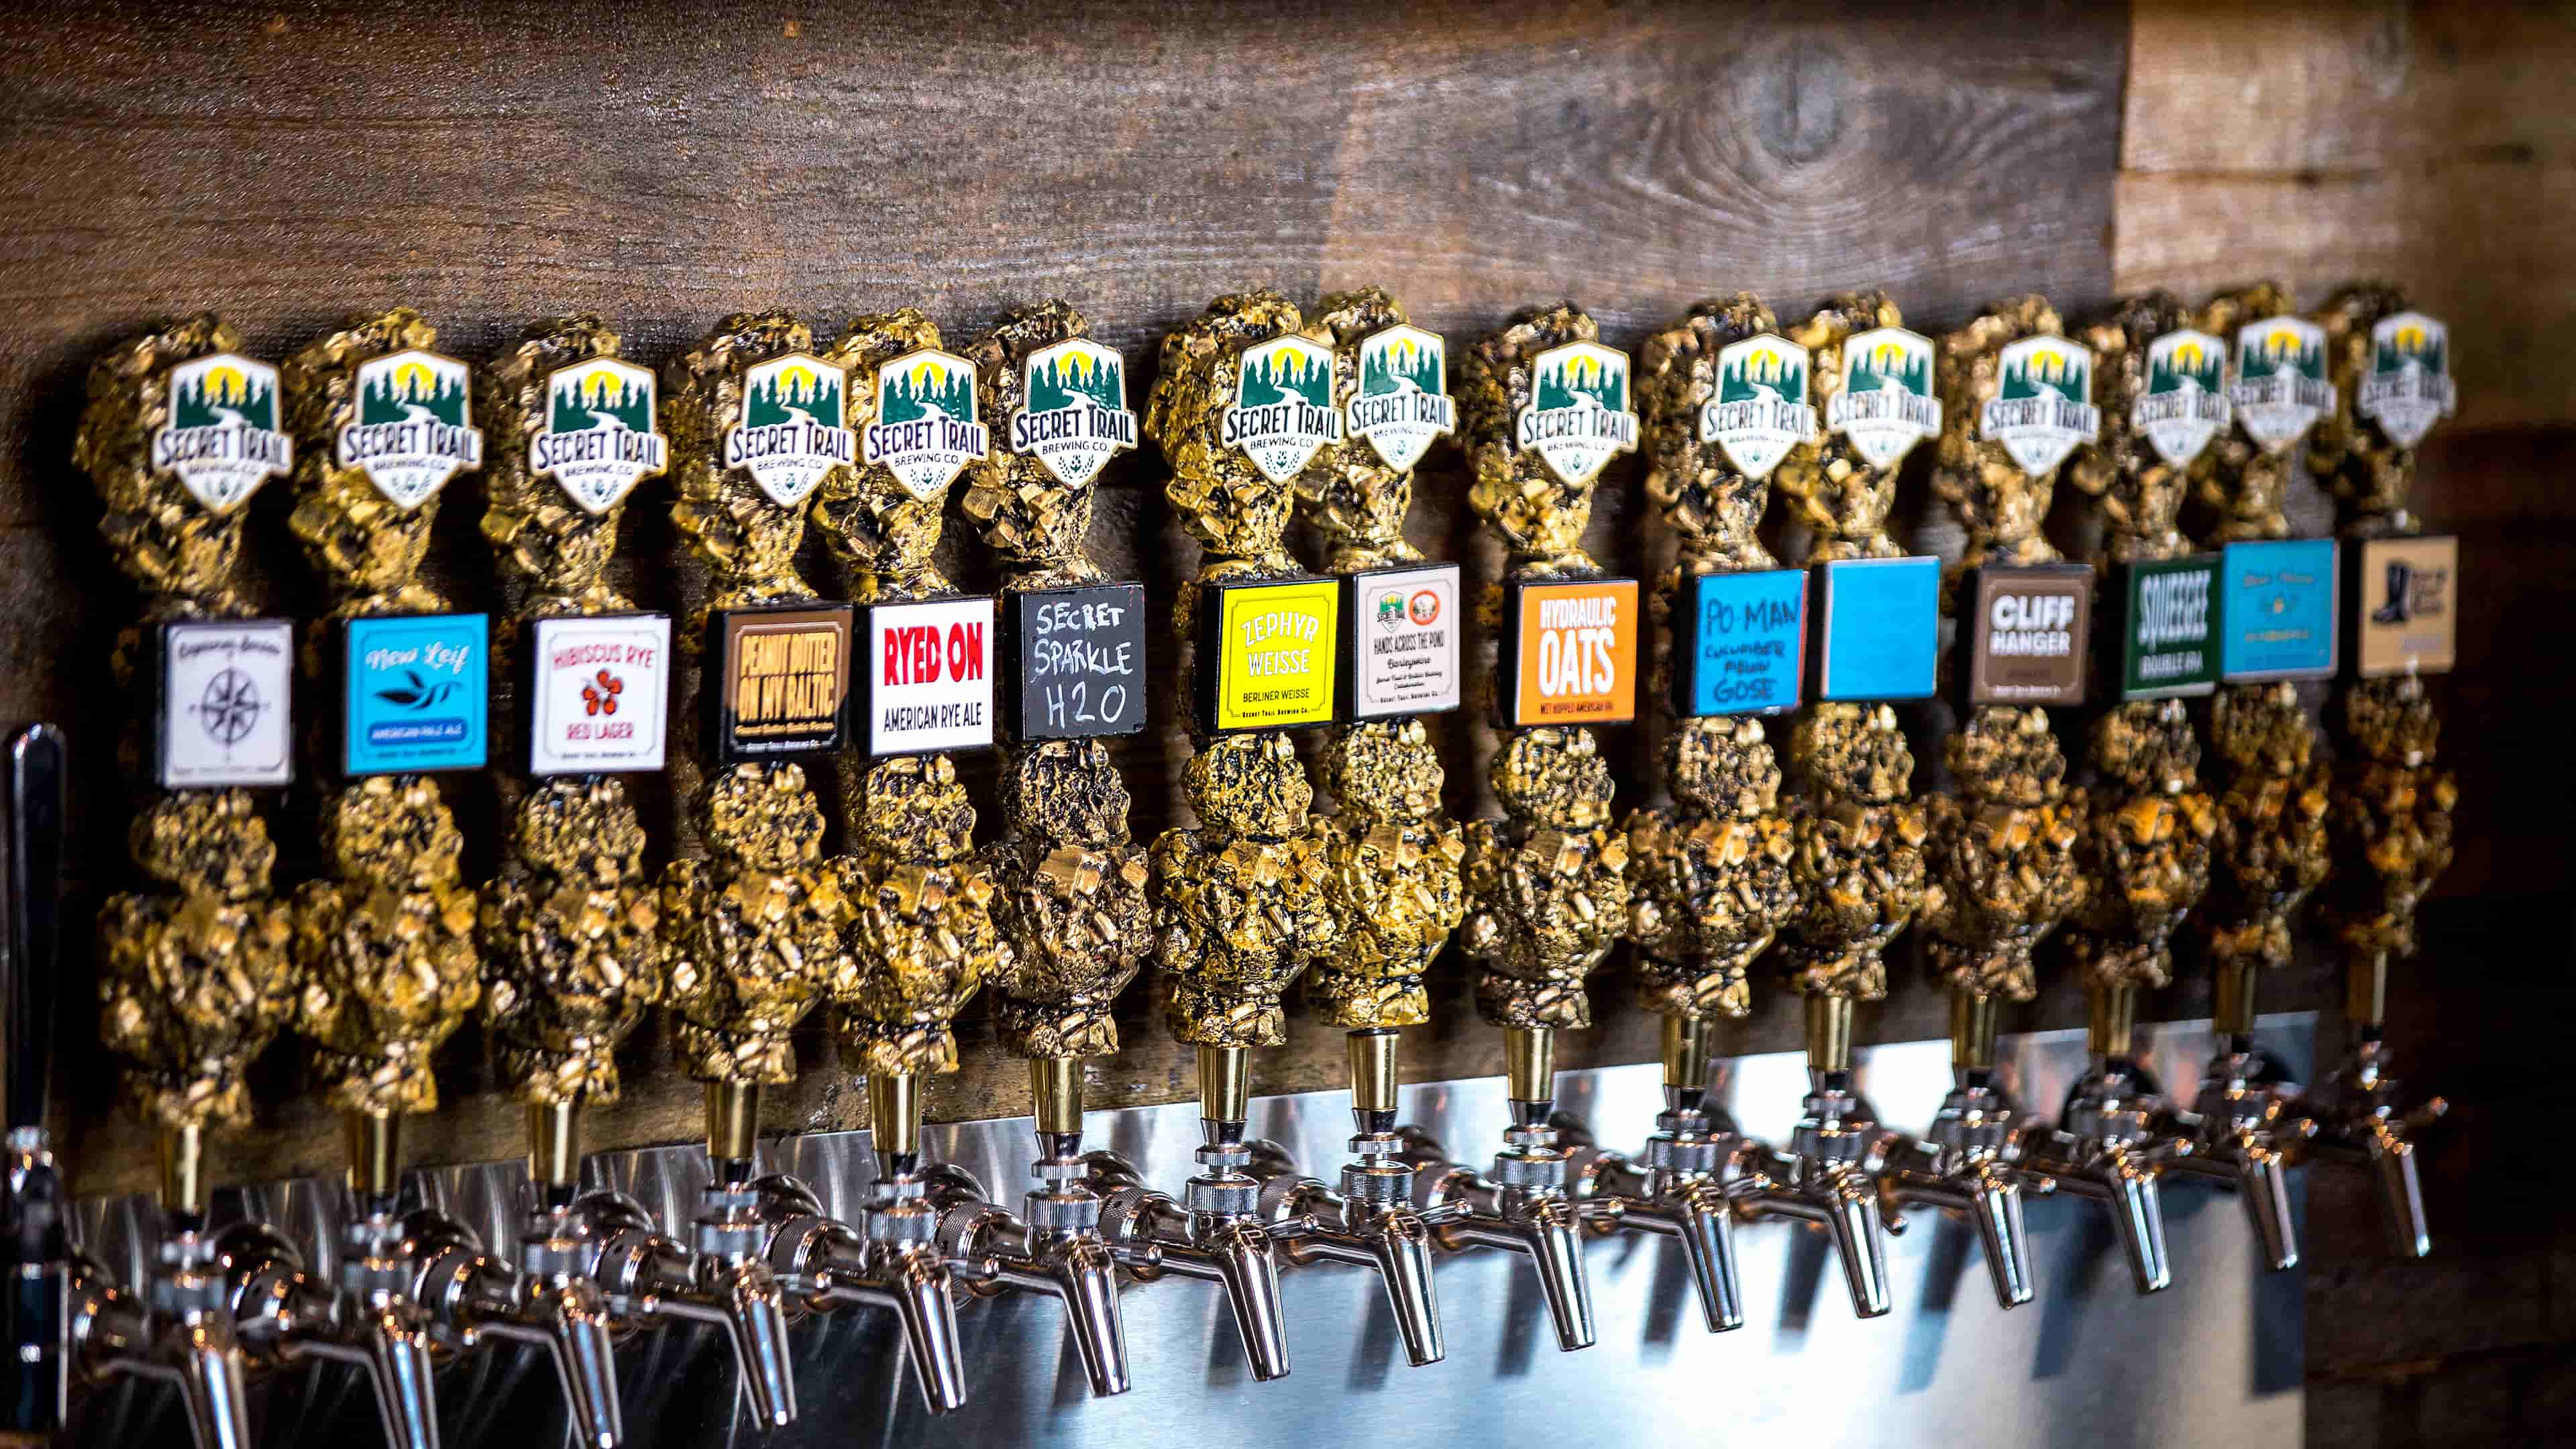 Secret Trail Brewing Company Chico California Tap Handle Photo by Results Imagery